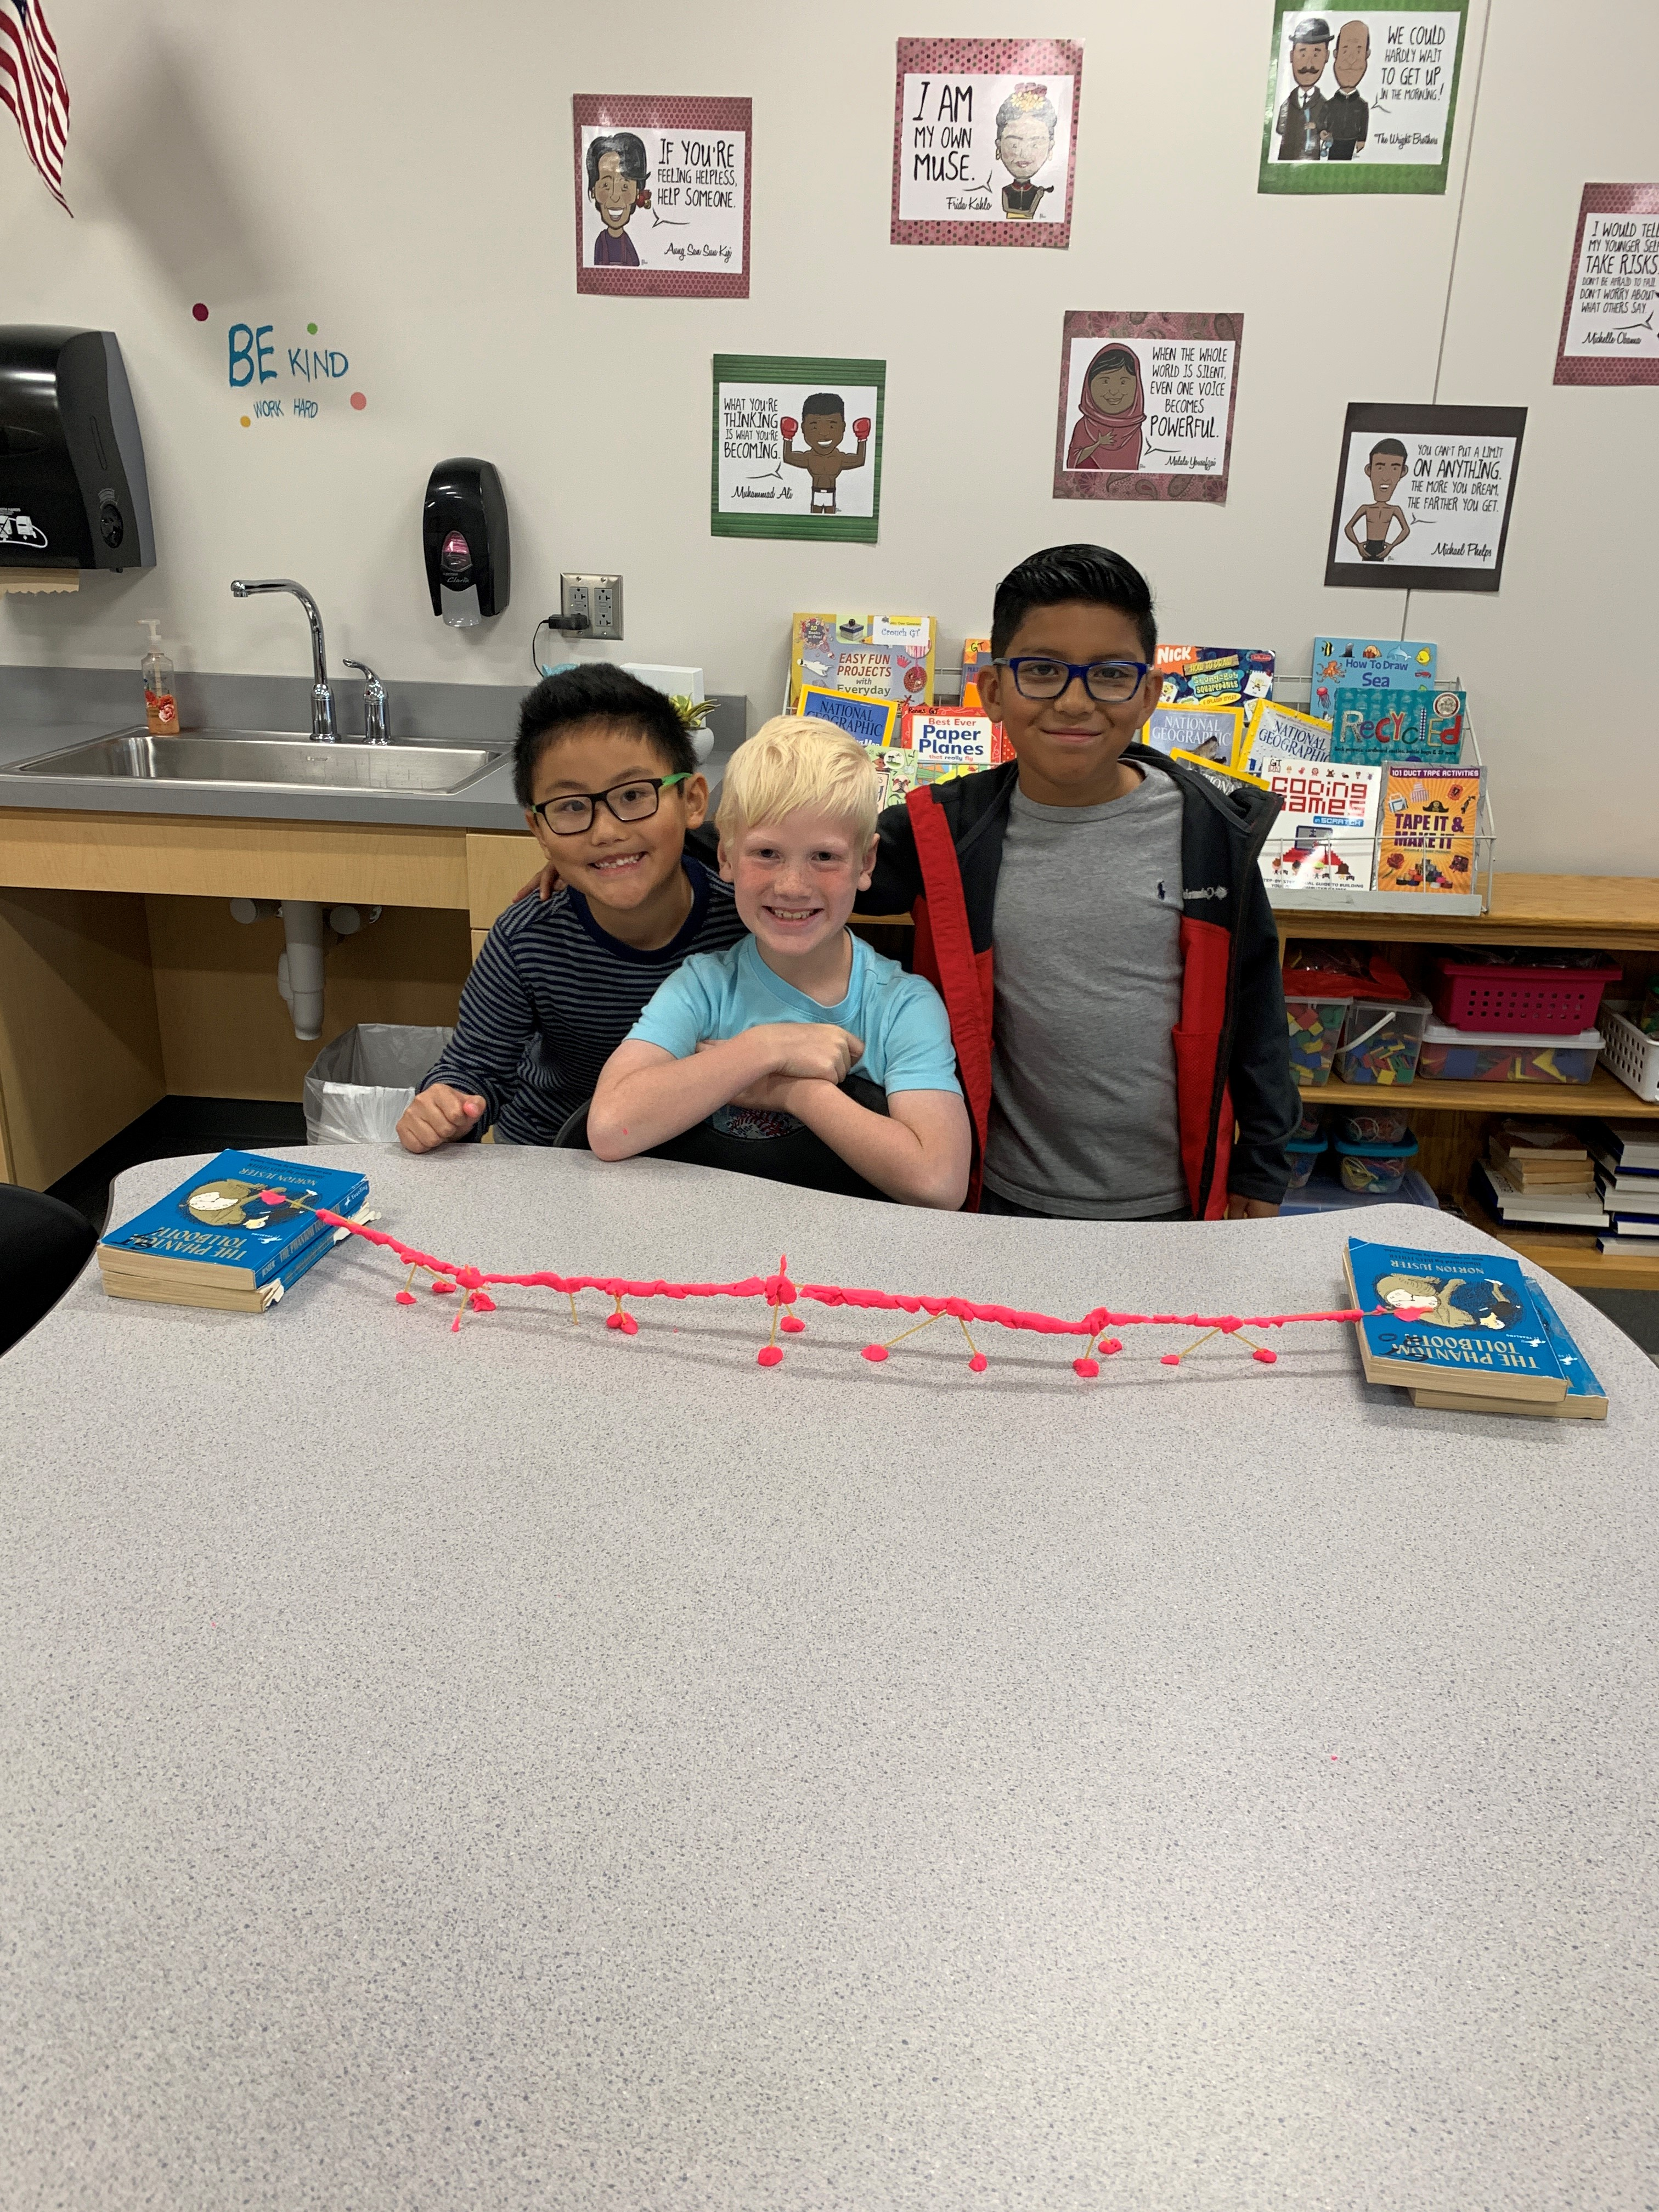 Photo of a Gifted & Talented program activity.